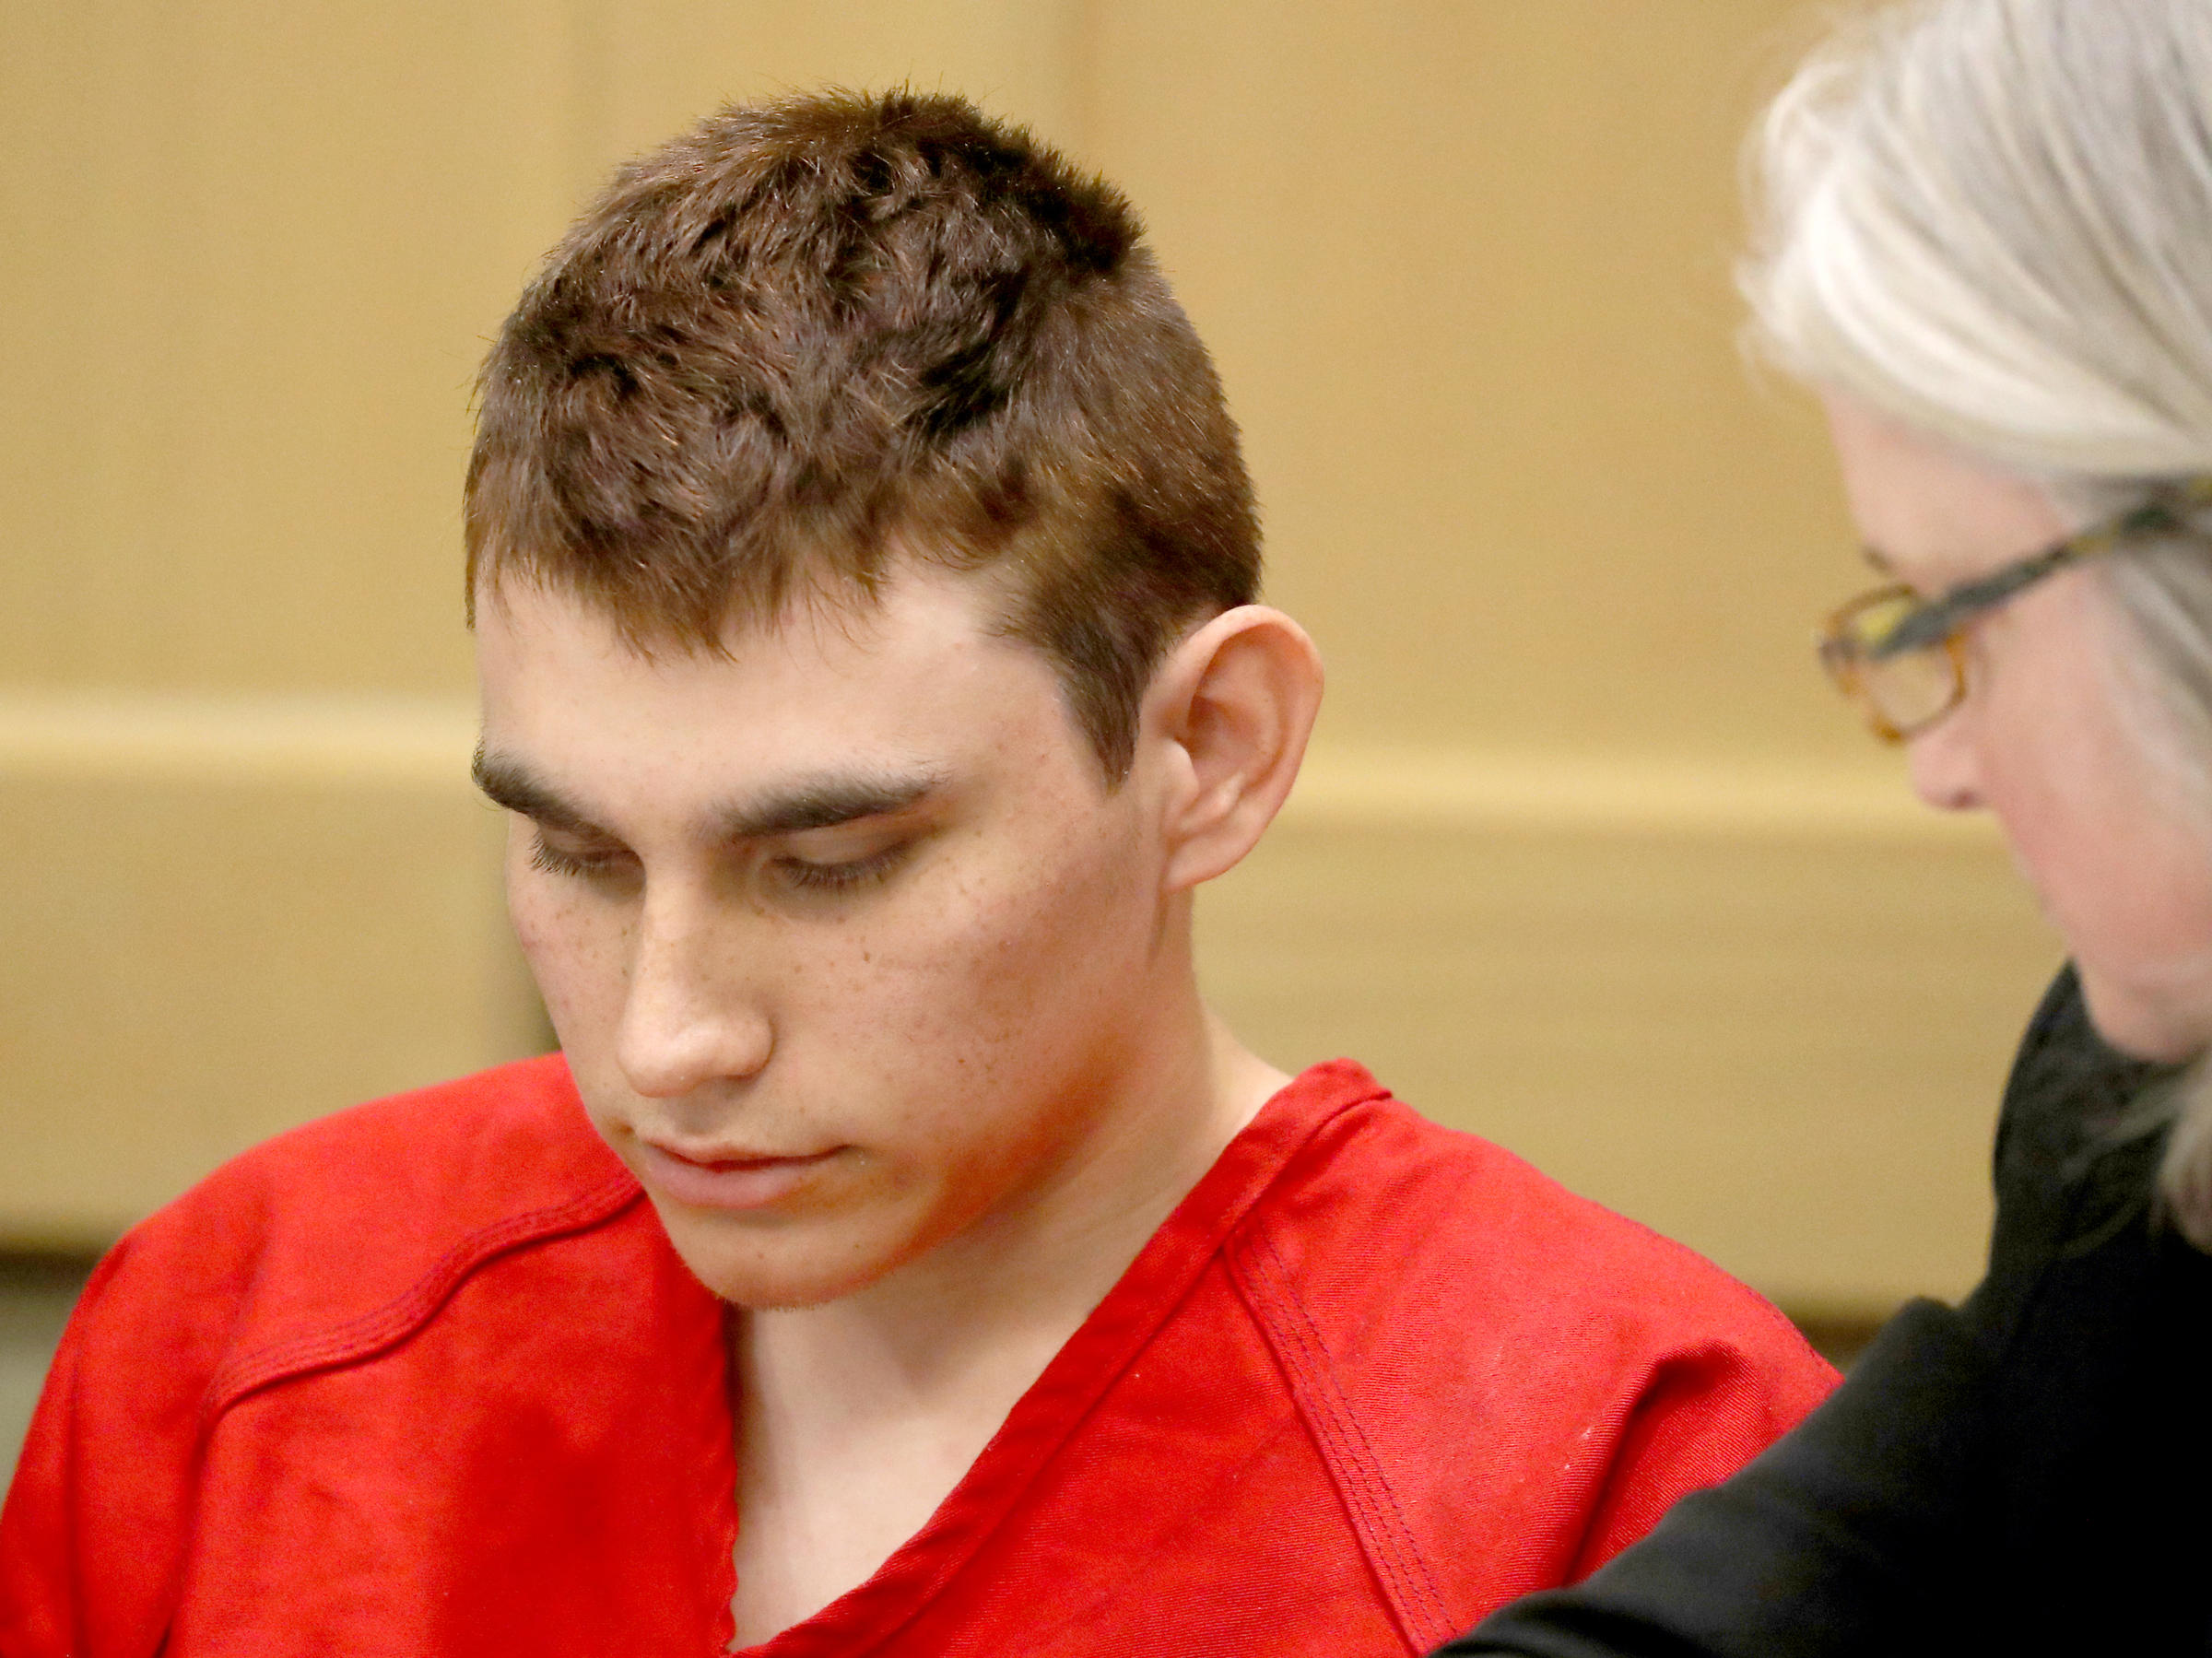 Prosecutors will seek death penalty for Florida school massacre suspect